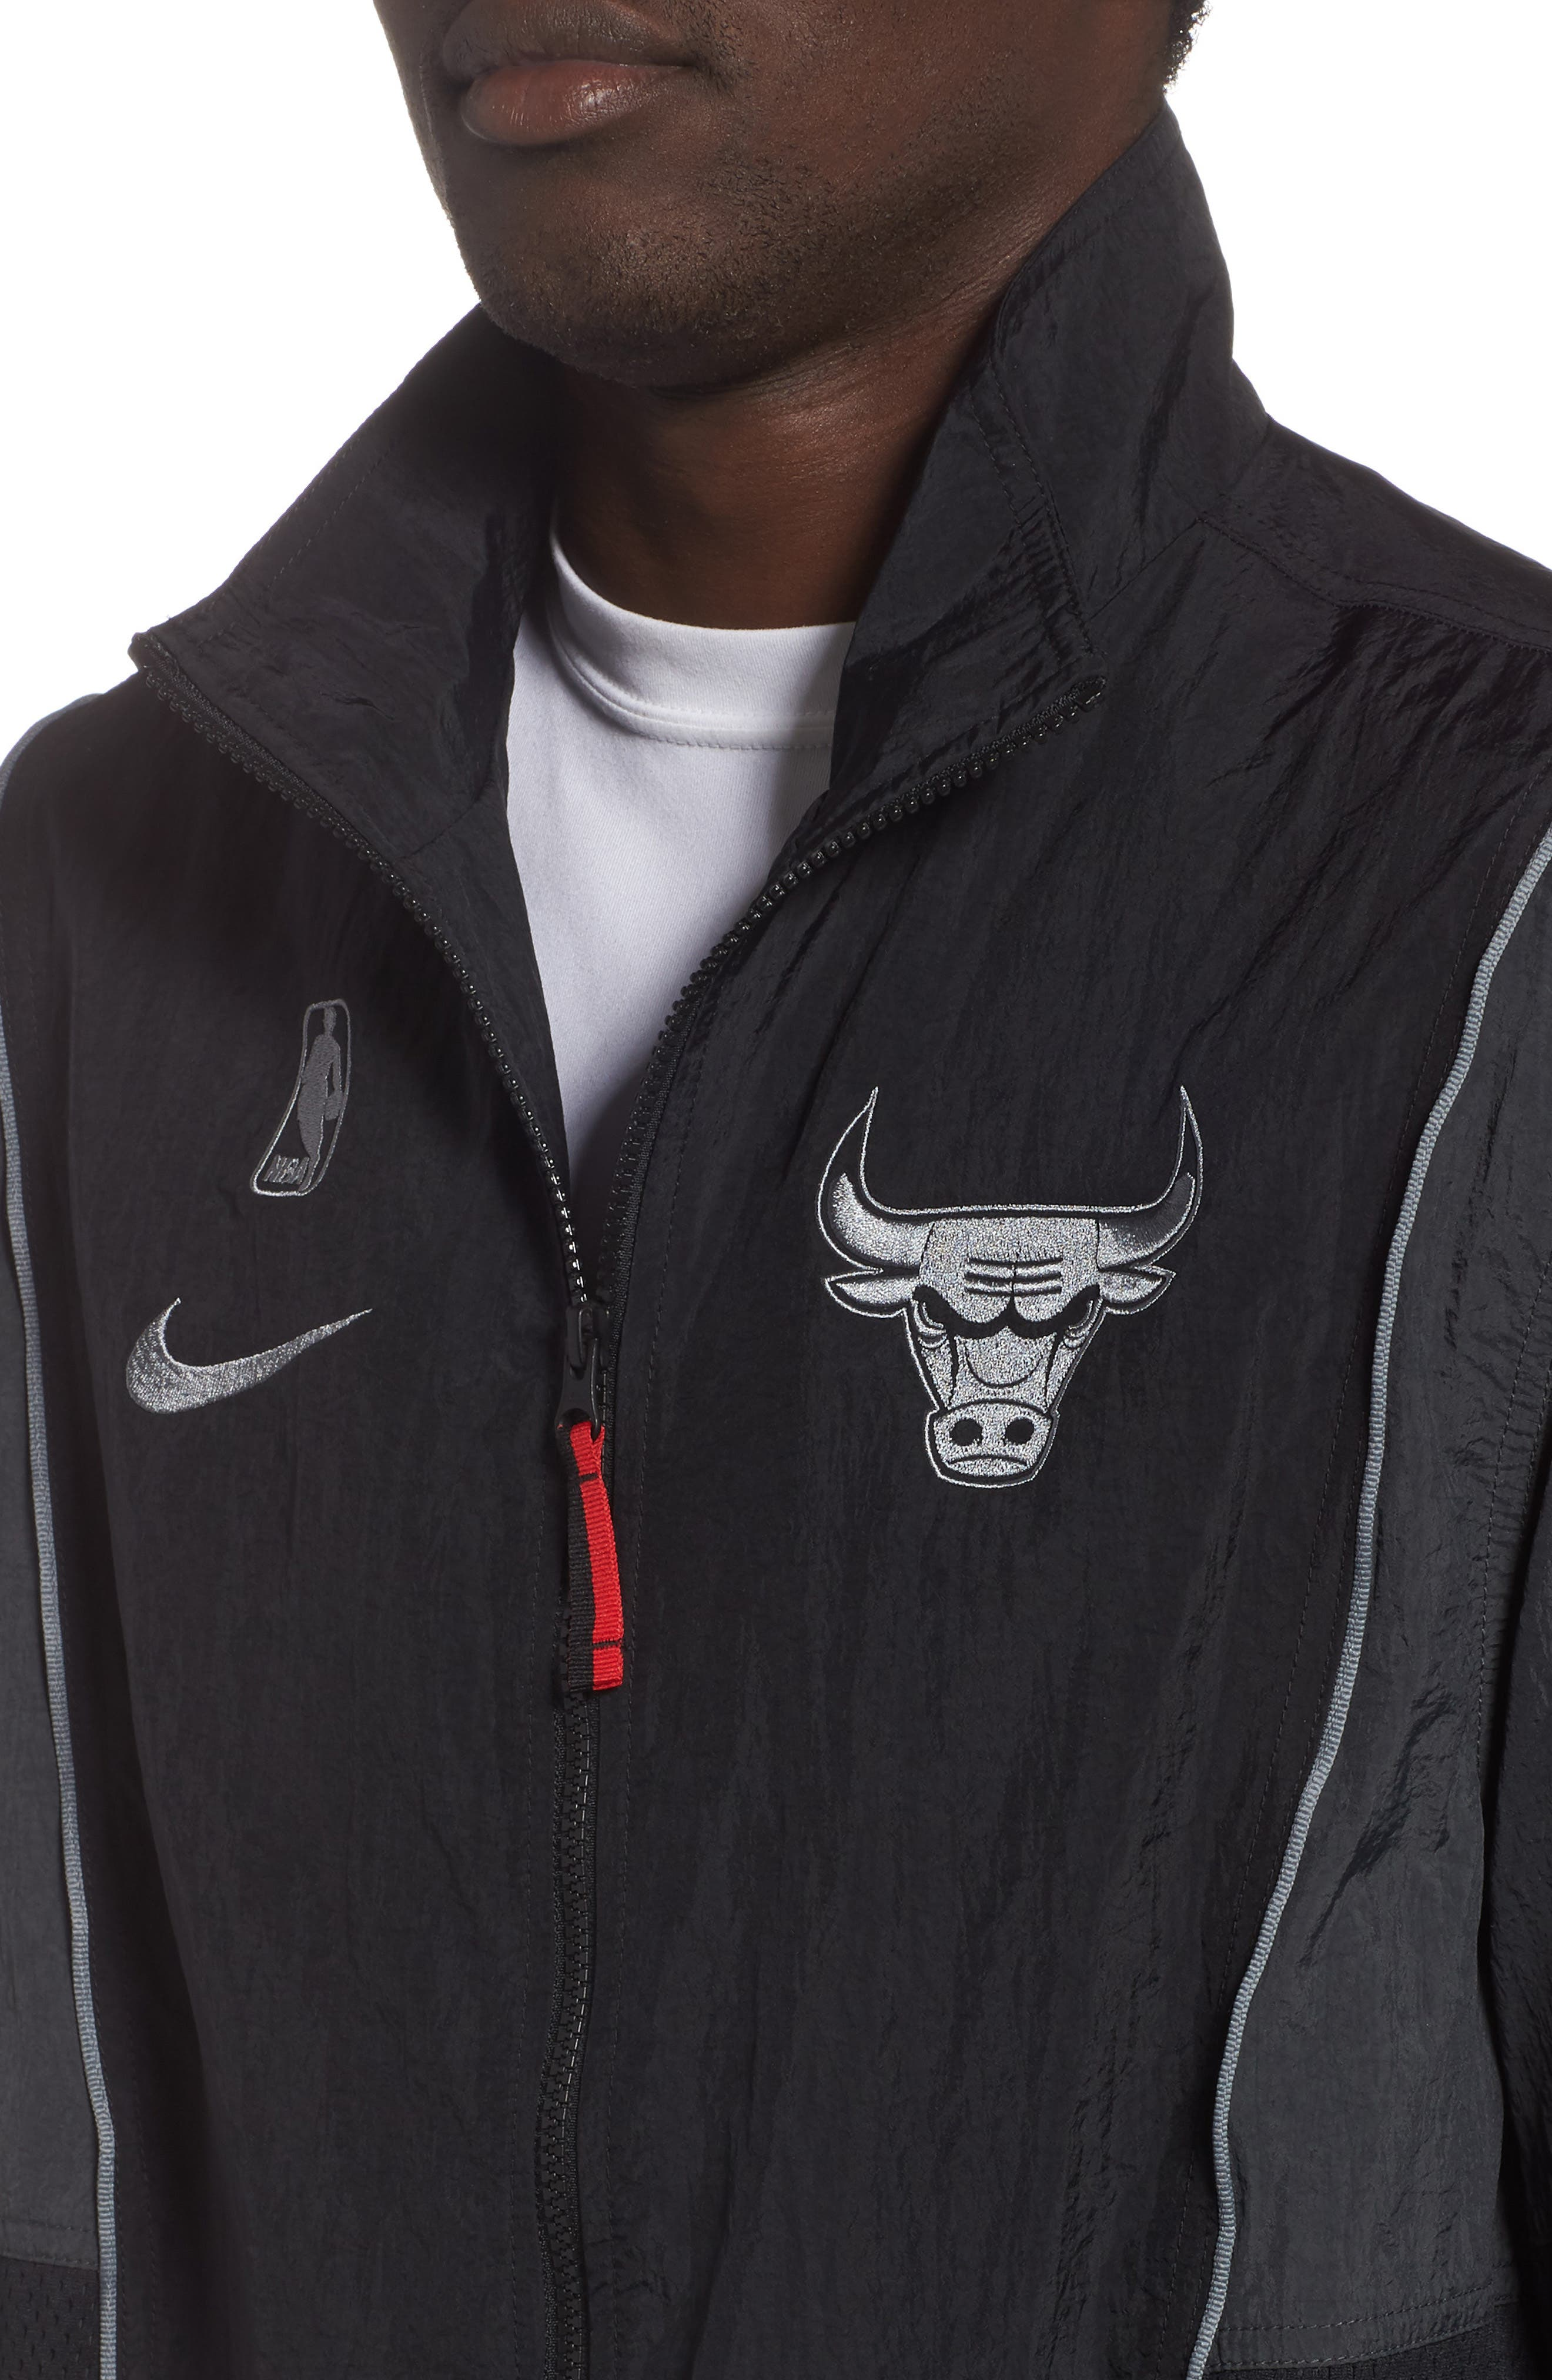 Chicago Bulls Track Jacket,                             Alternate thumbnail 4, color,                             BLACK/ ANTHRACITE/ COOL GREY